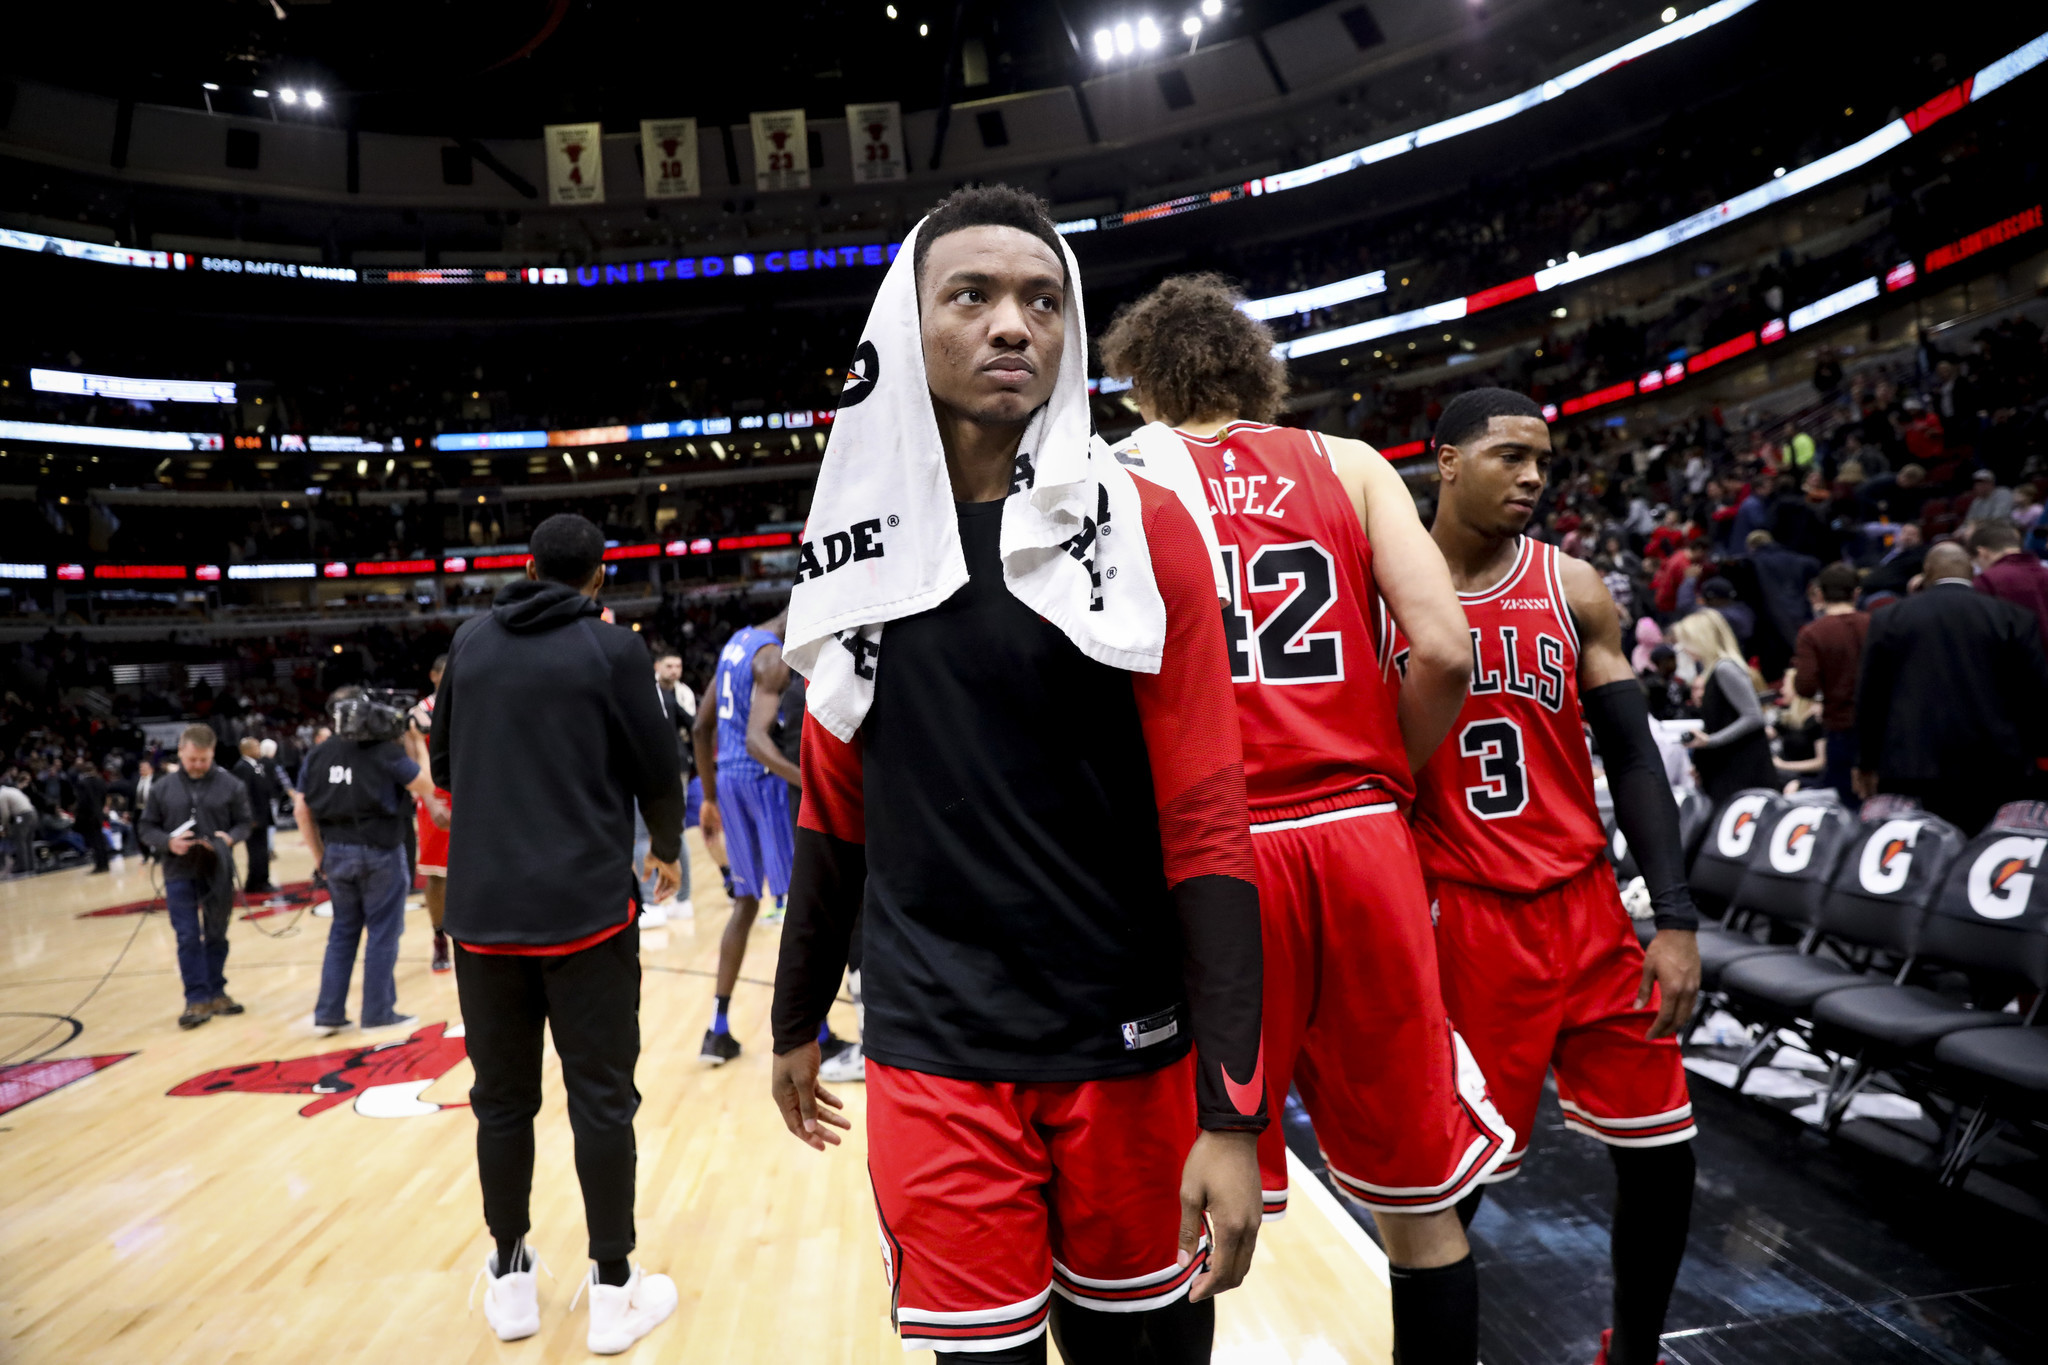 Wendell Carter Jr., who was limited to 44 games because of a thumb injury, fails to land on the NBA All-Rookie teams